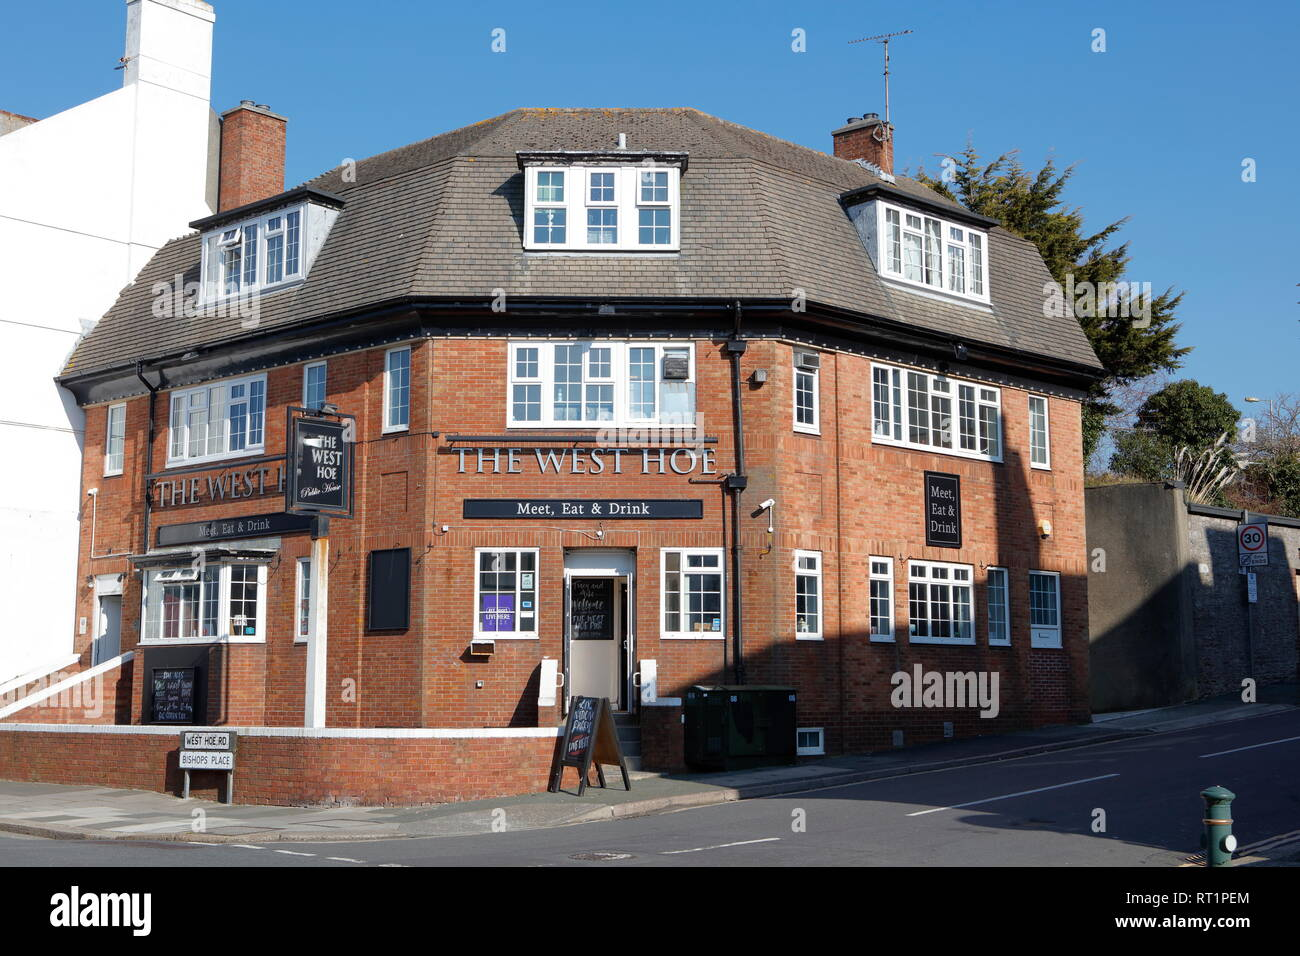 Plymouth, Devon, UK. 26th February, 2019. View of West Hoe Public House and Restaurant from West Hoe Road in Plymouth. Stock Photo